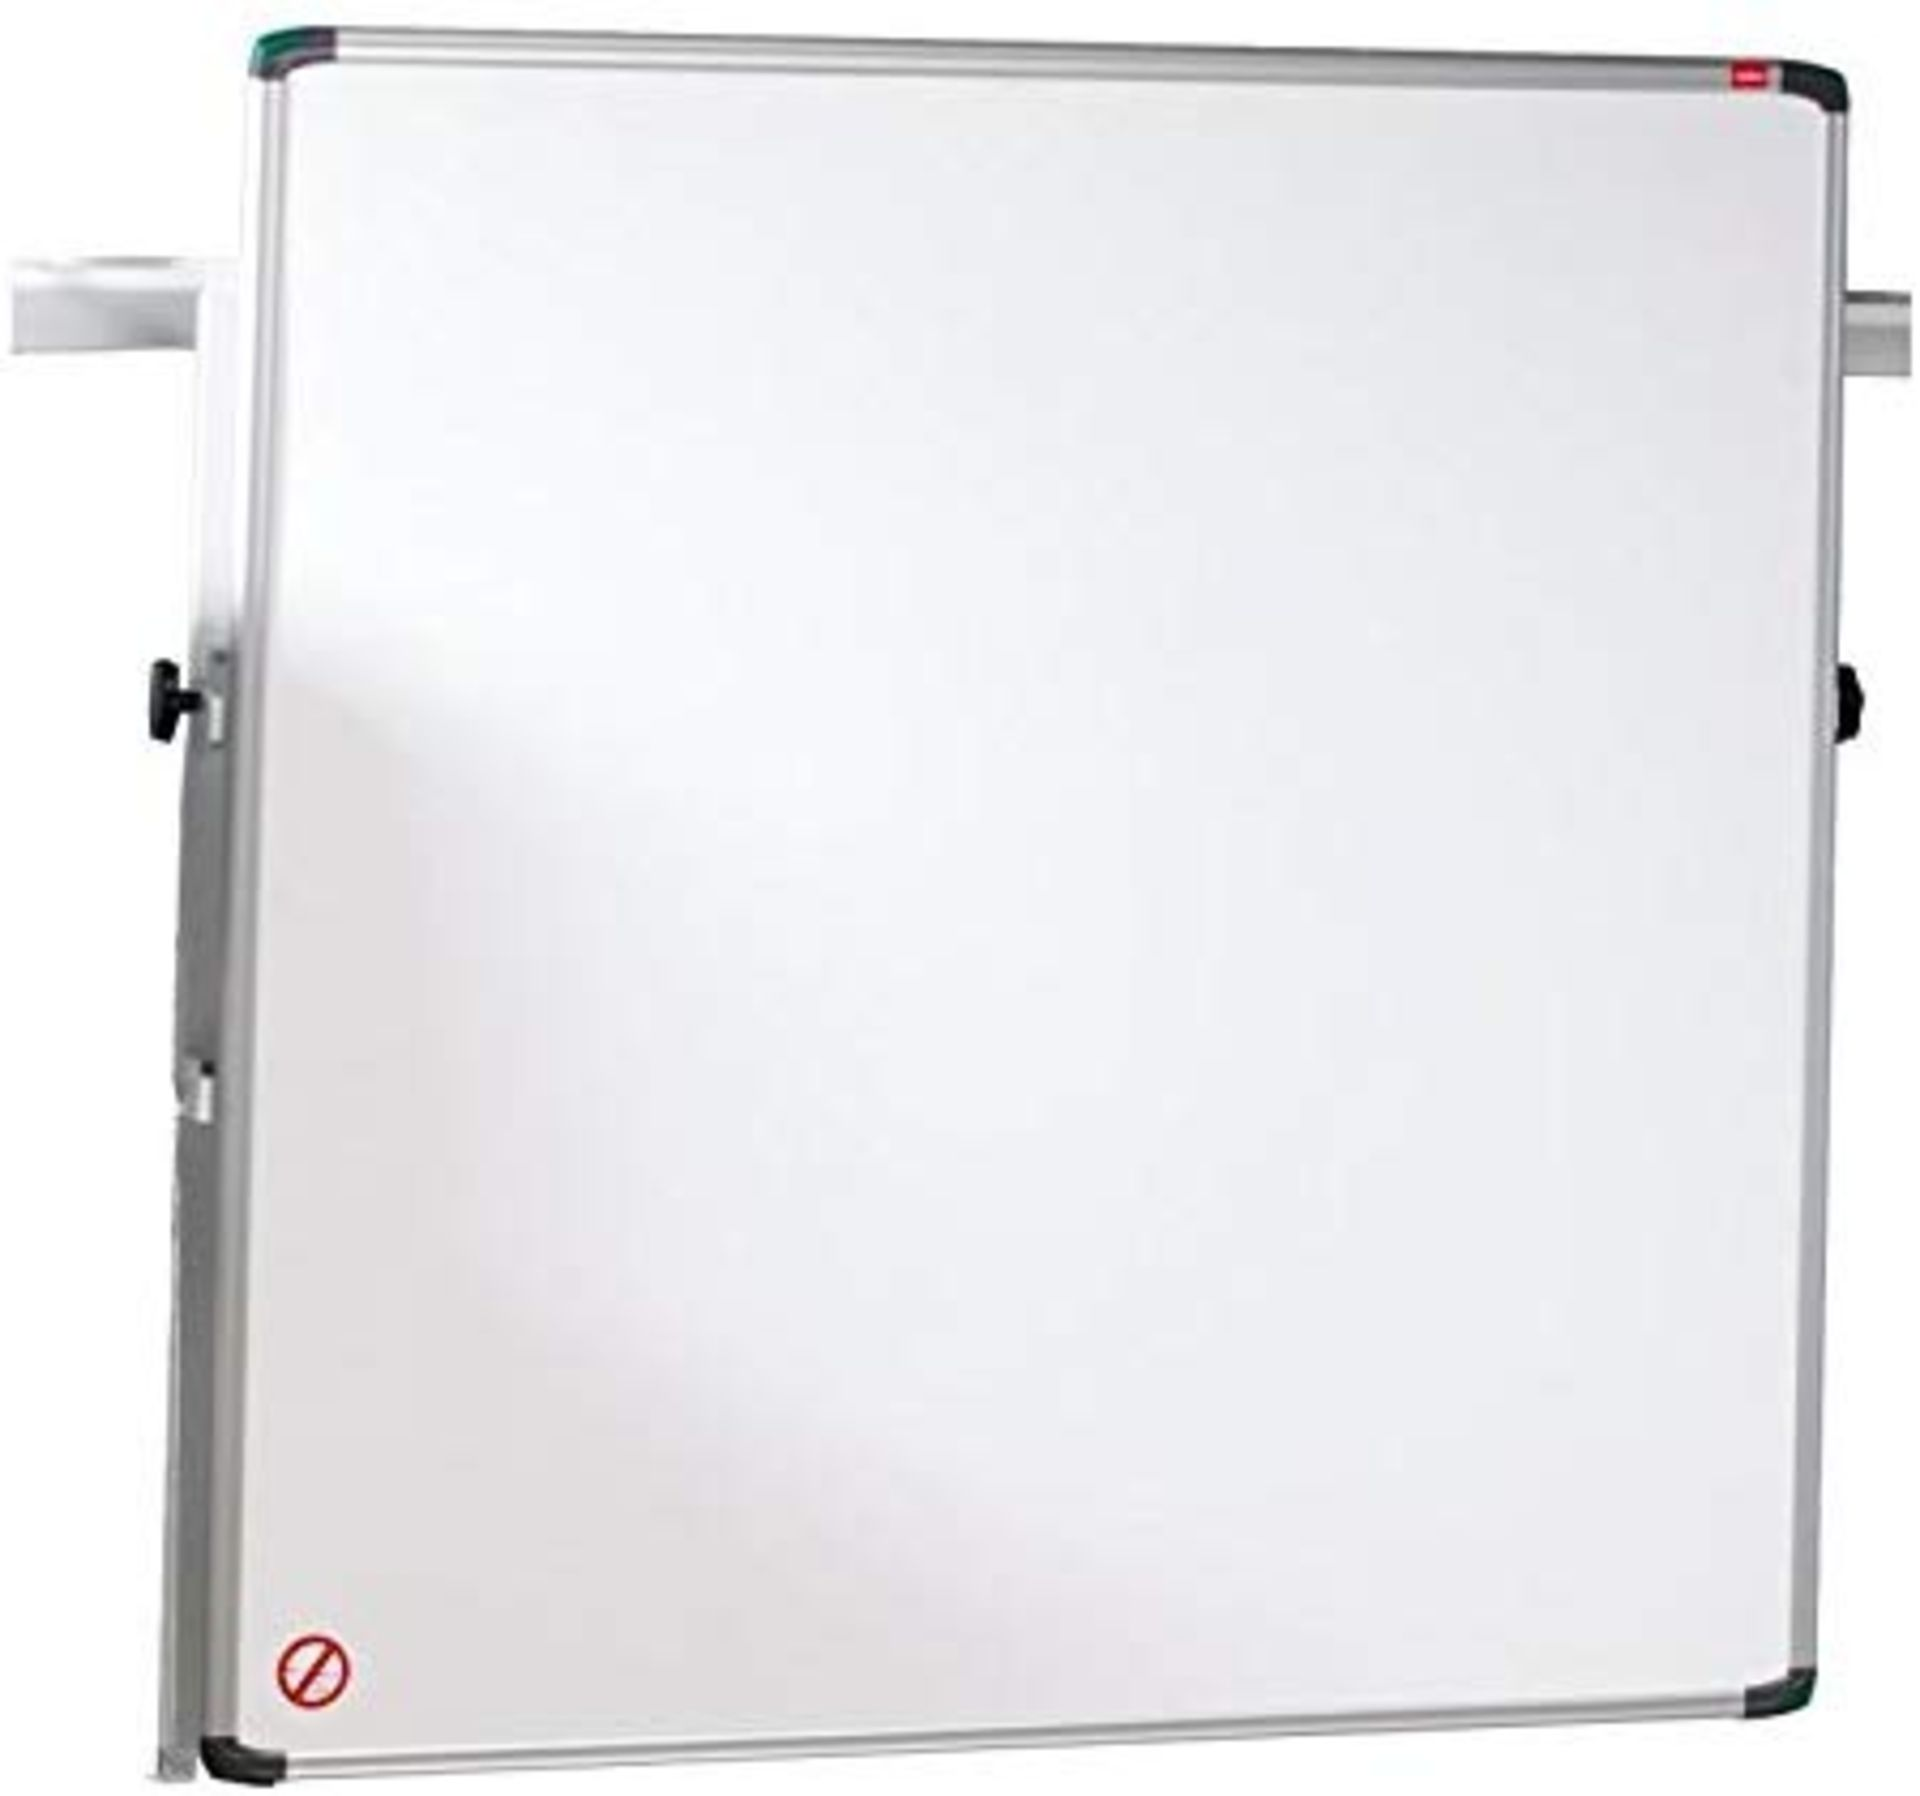 Lot 5 - Whiteboards, Planners, Floor Protectors Collection Only